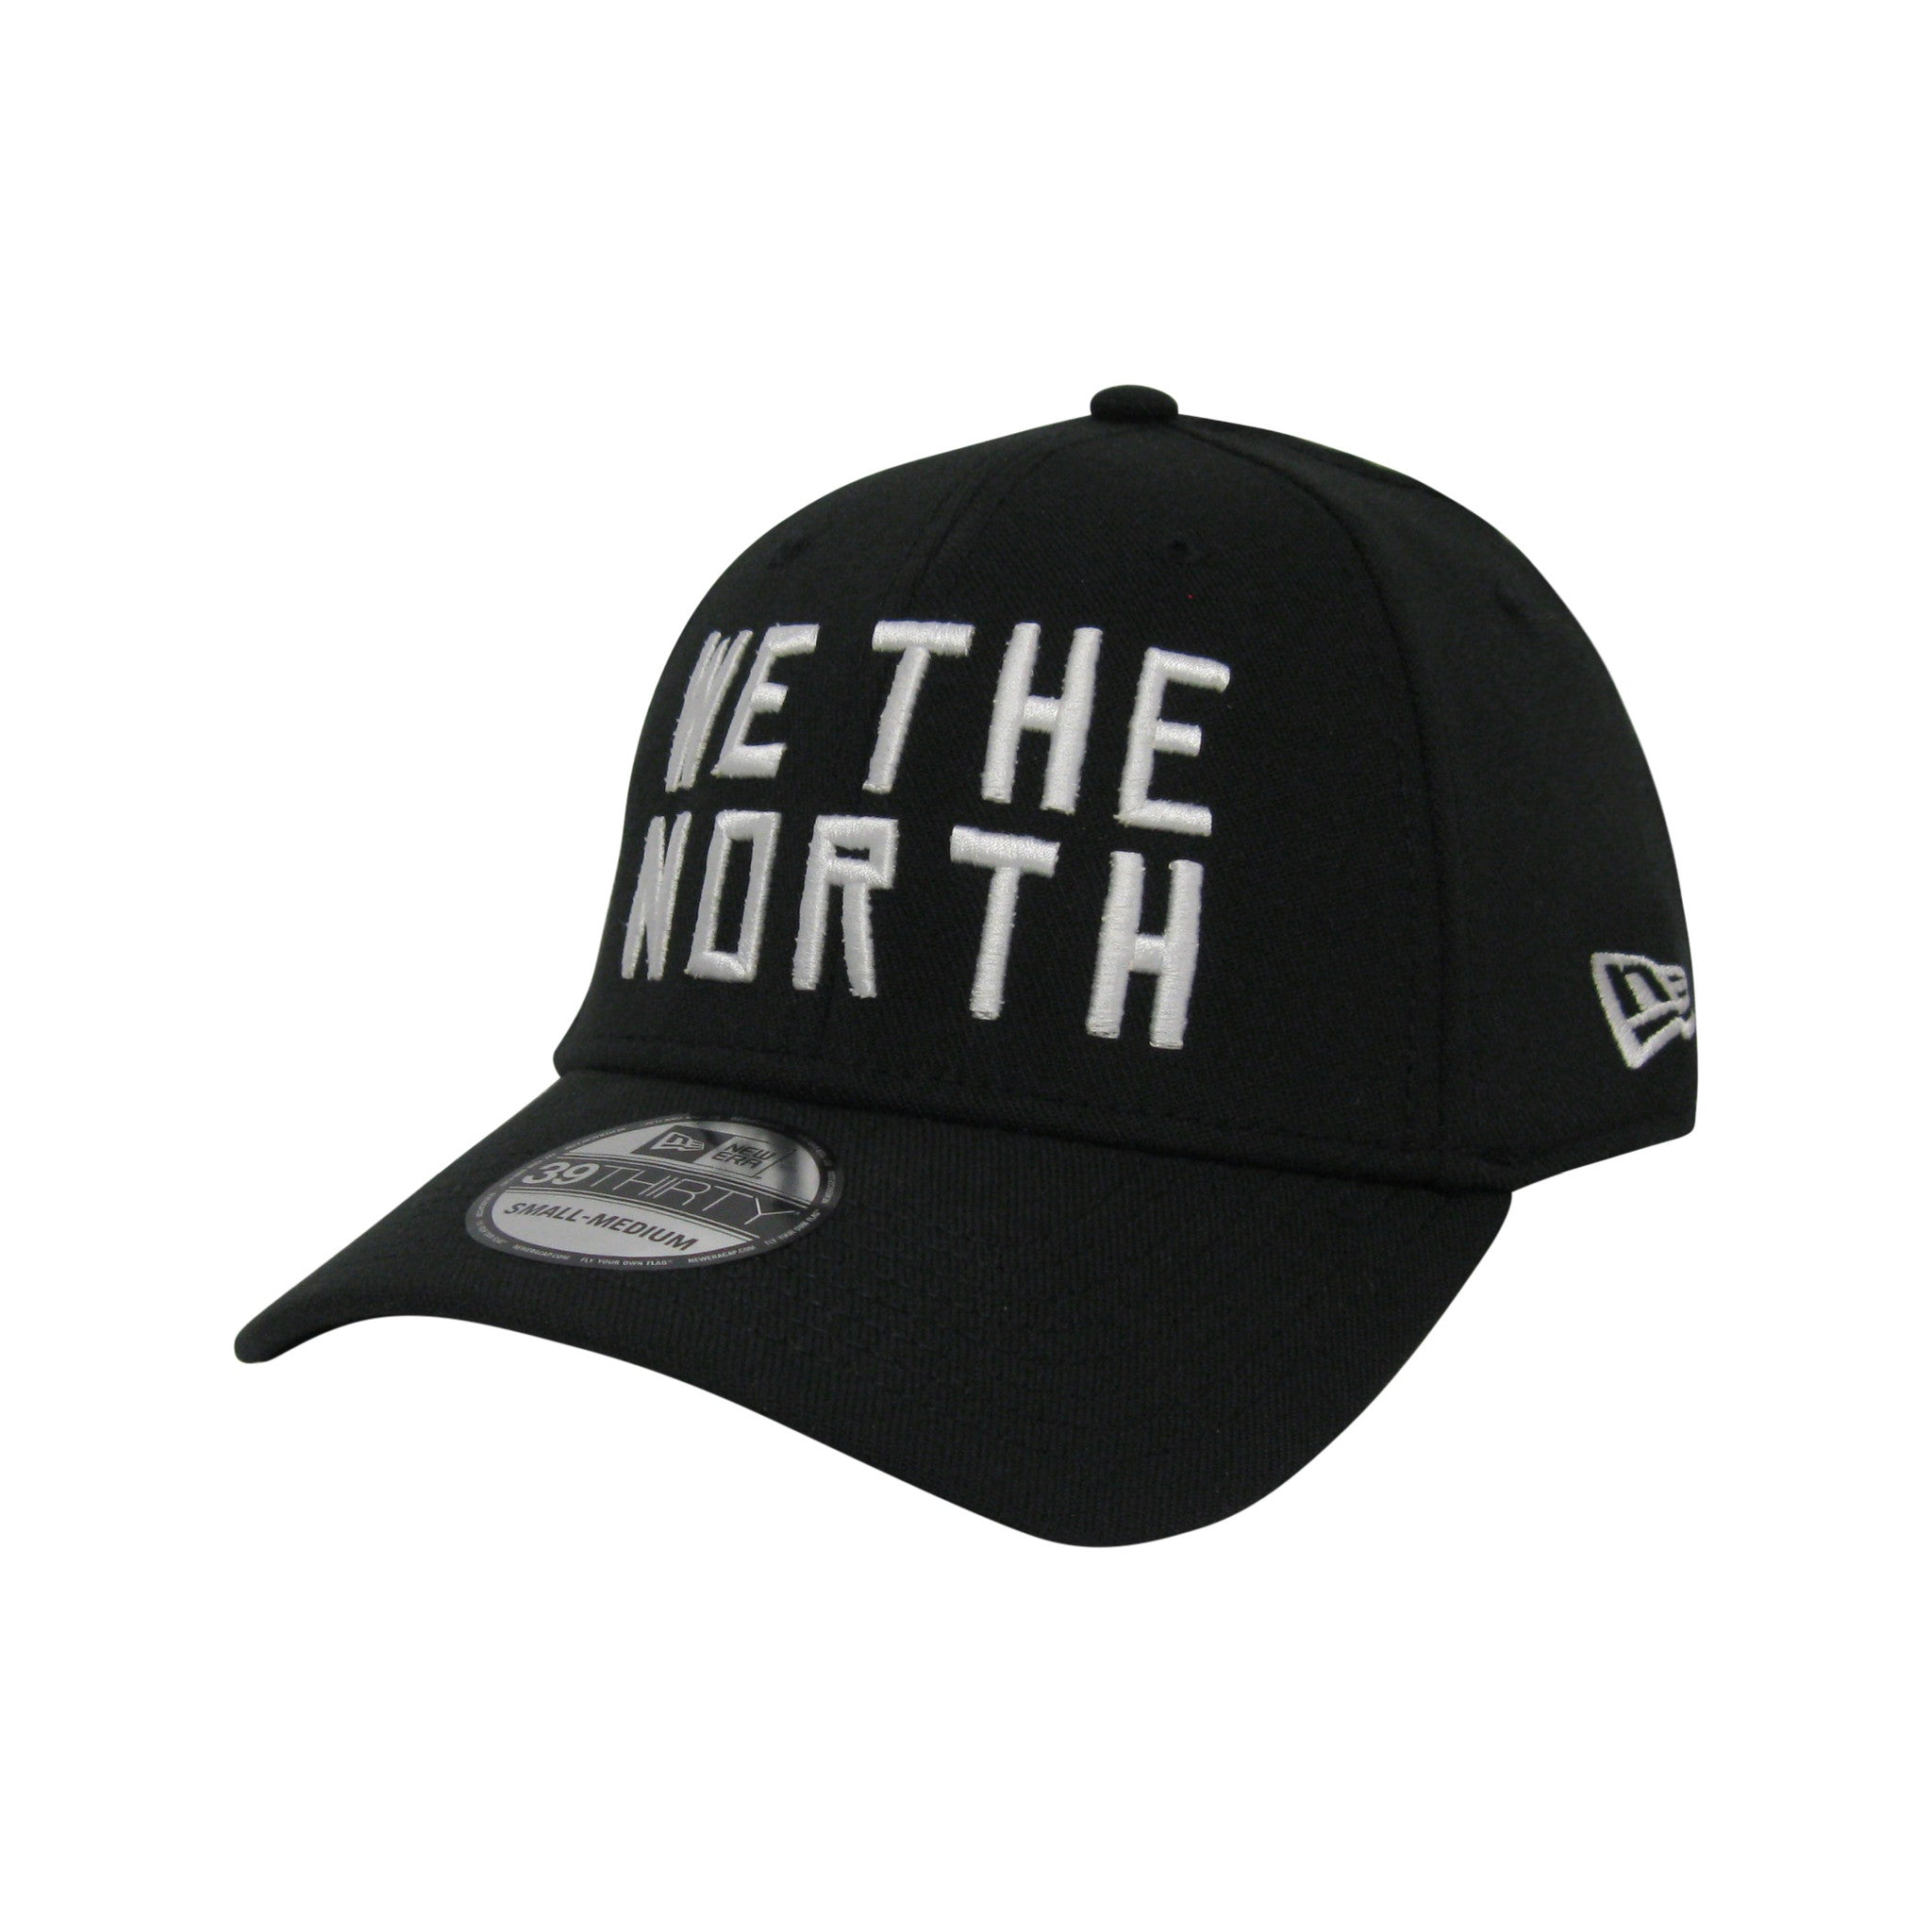 Toronto Raptors New Era Men's 'We the North' 3930 Stretch Fit Hat - shop.realsports